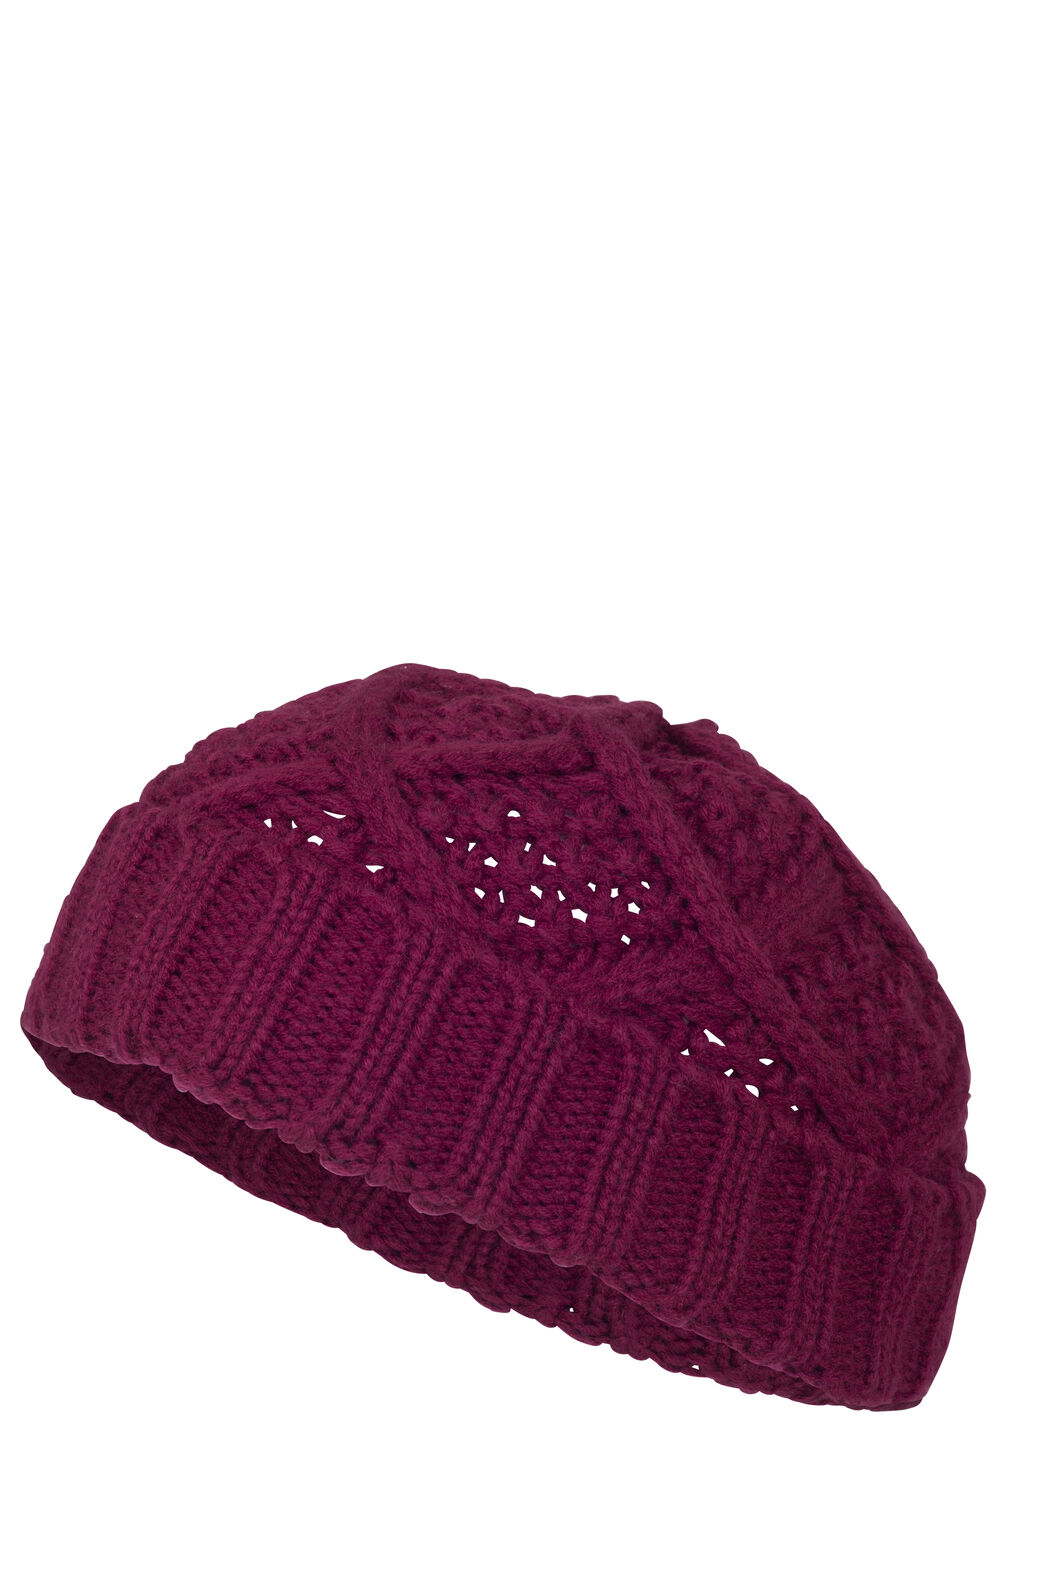 Macpac Mini Knit Beanie - Kids', Anemone, hi-res